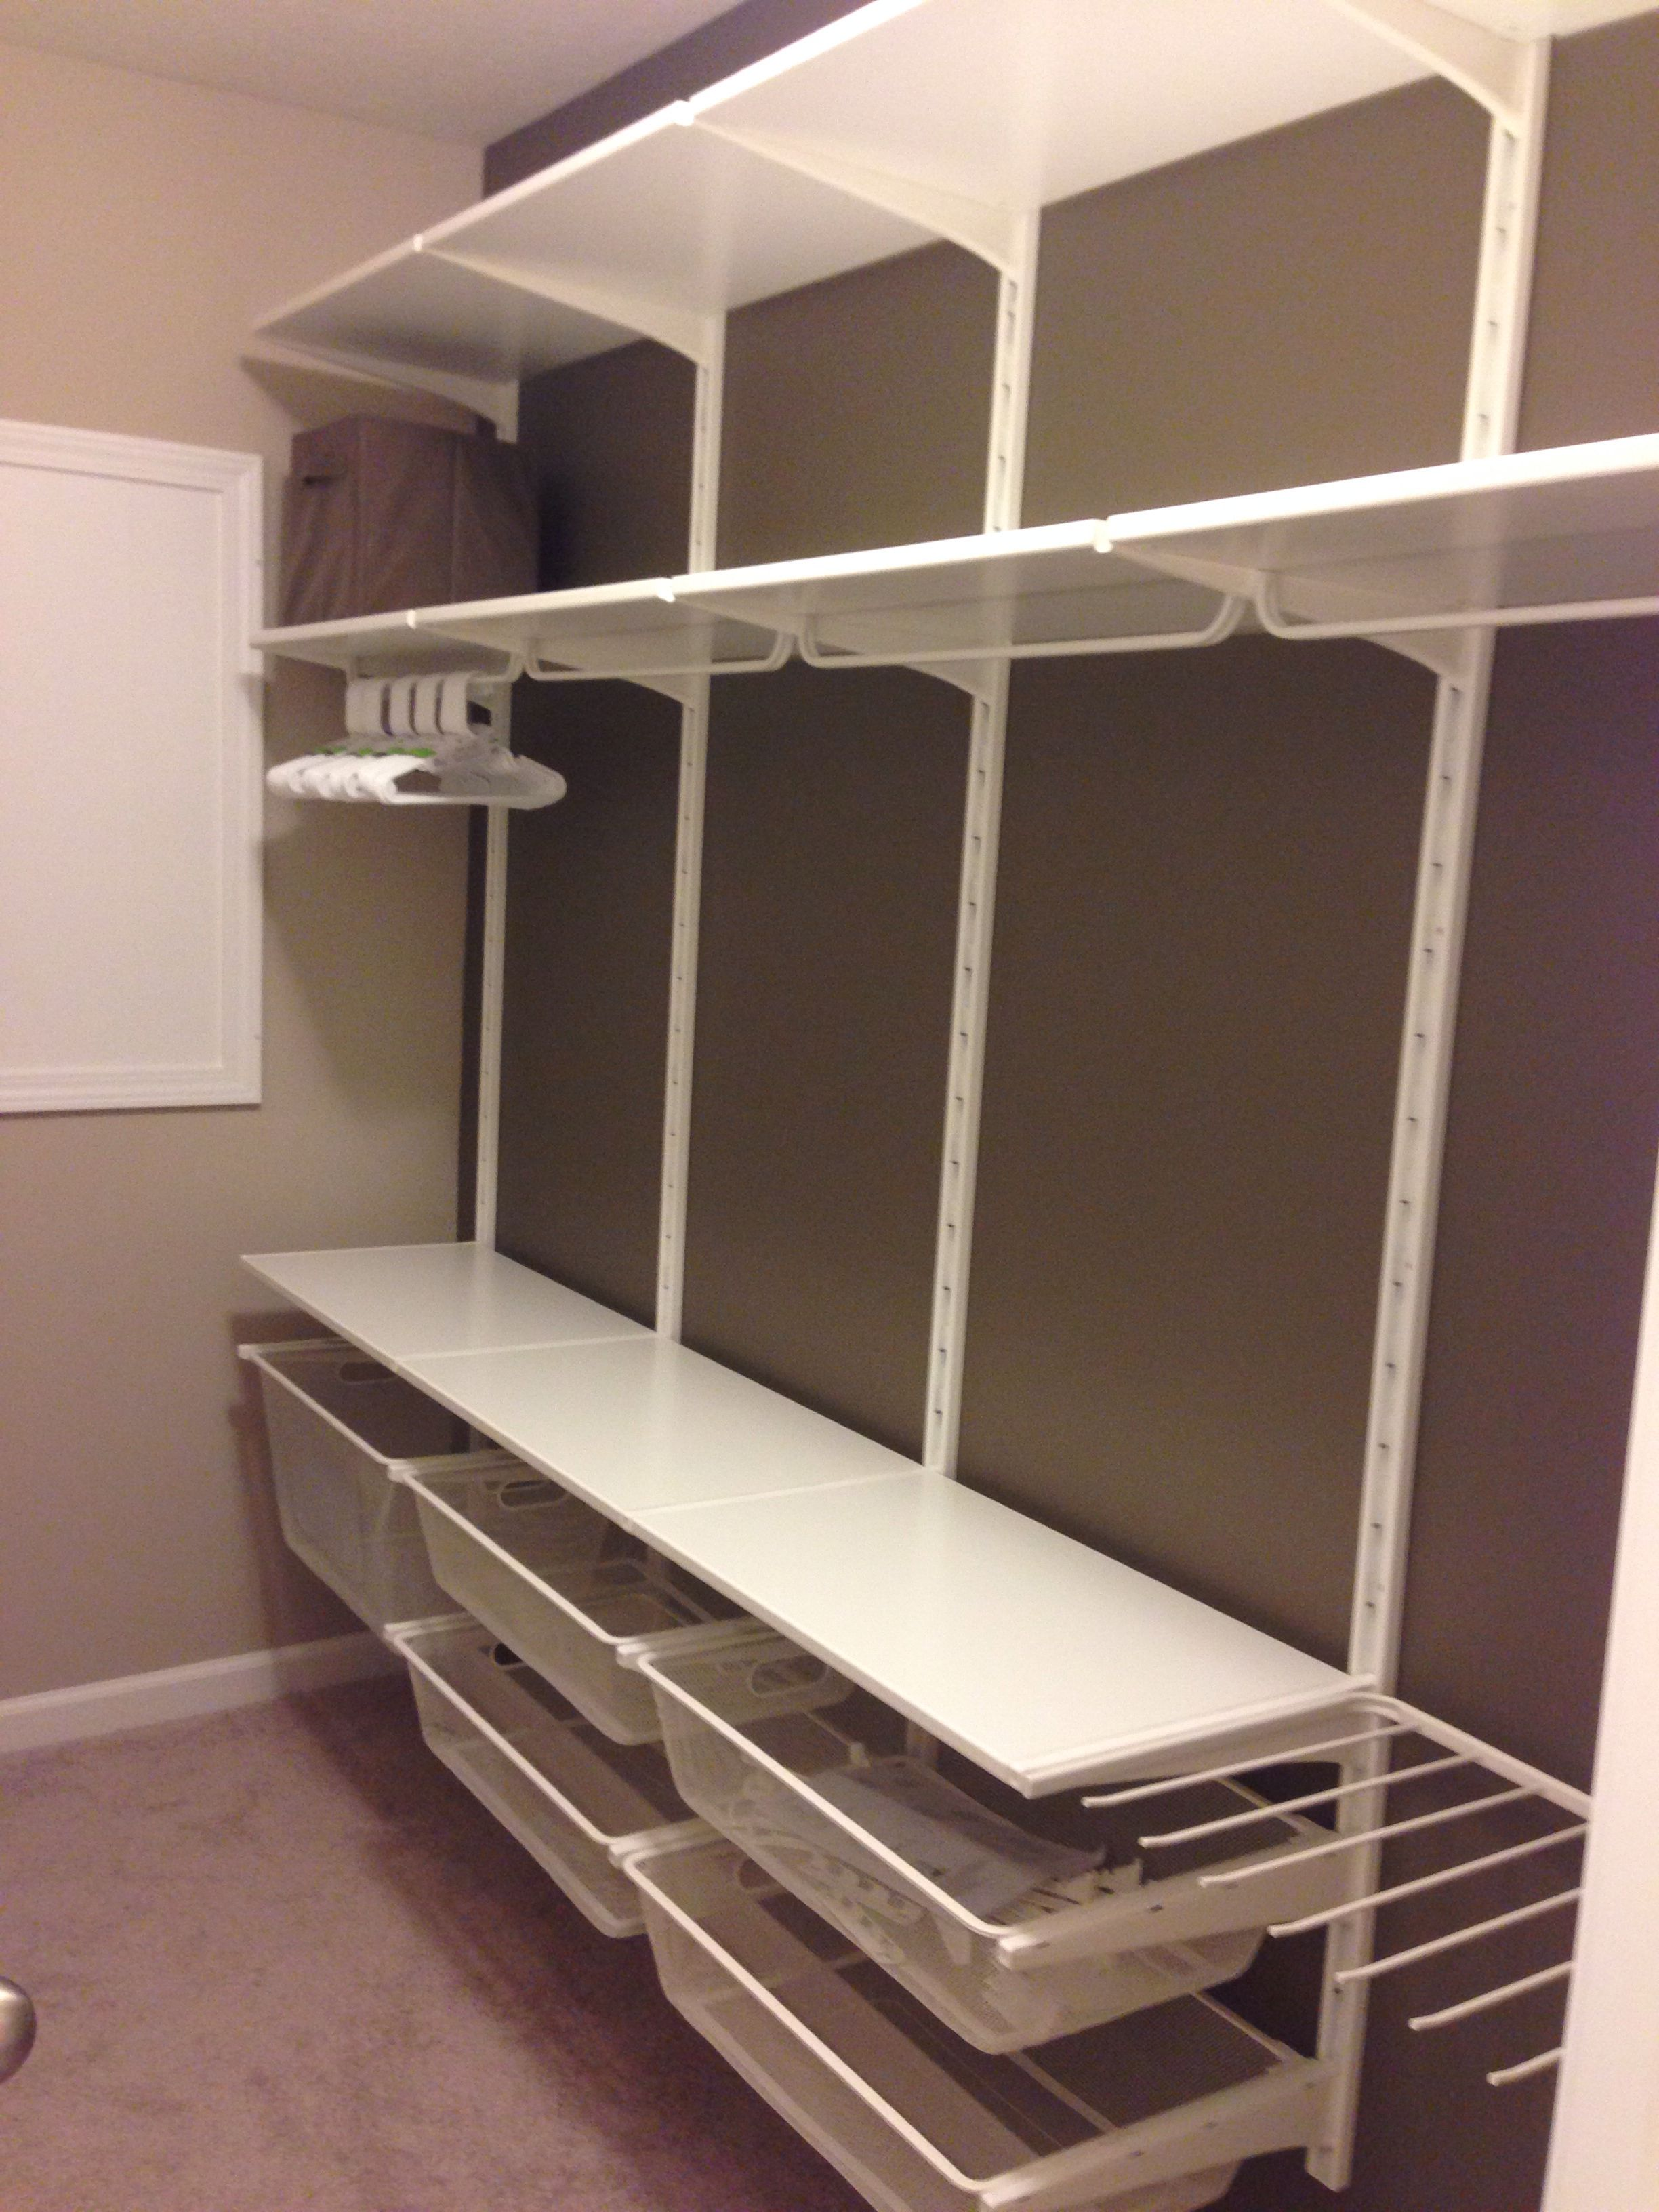 best 25 ikea algot ideas on pinterest algot ikea closet system and ikea clothing storage. Black Bedroom Furniture Sets. Home Design Ideas